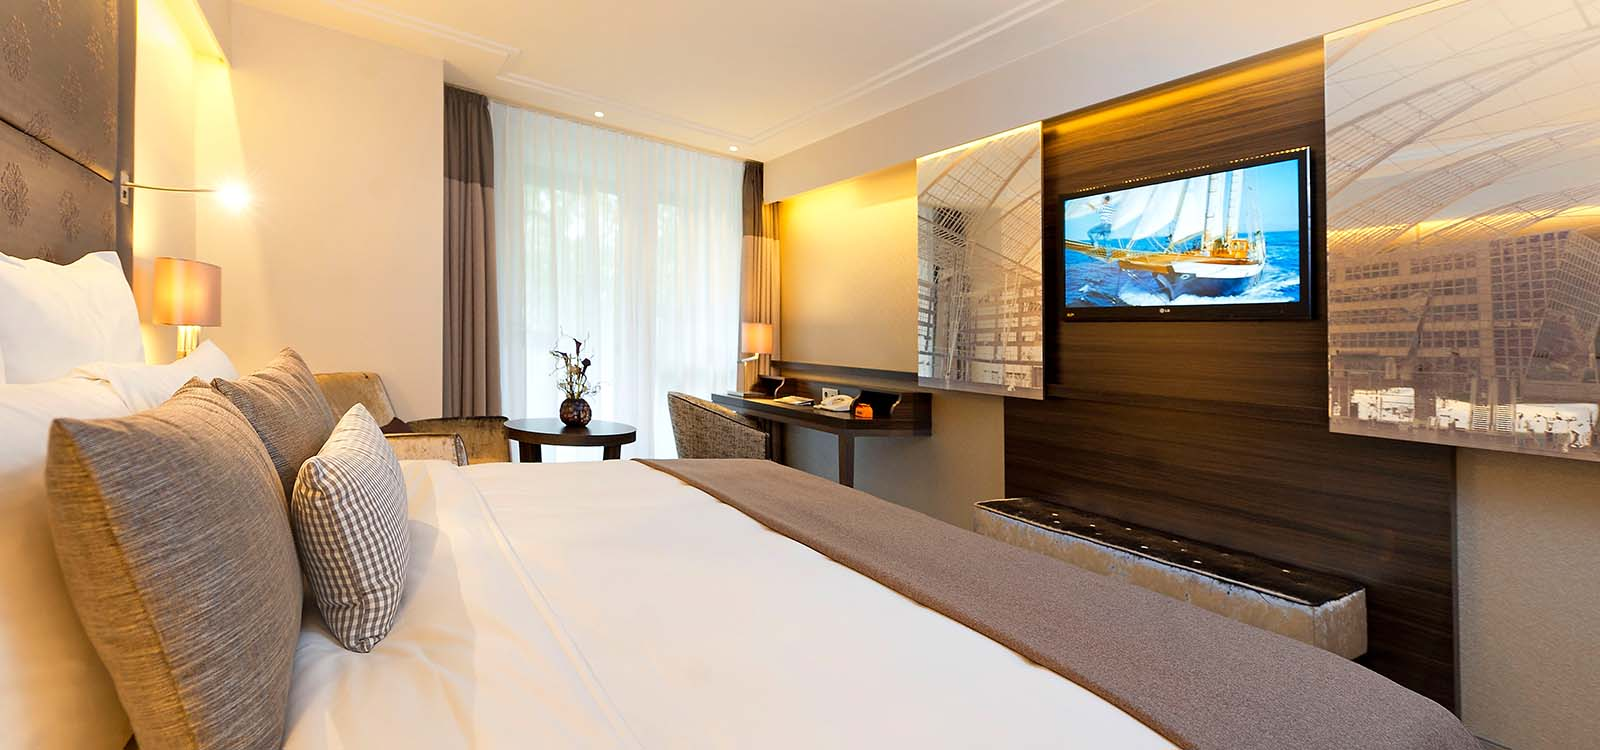 Hospitality consulting services hotel technology for Hotel design bs as